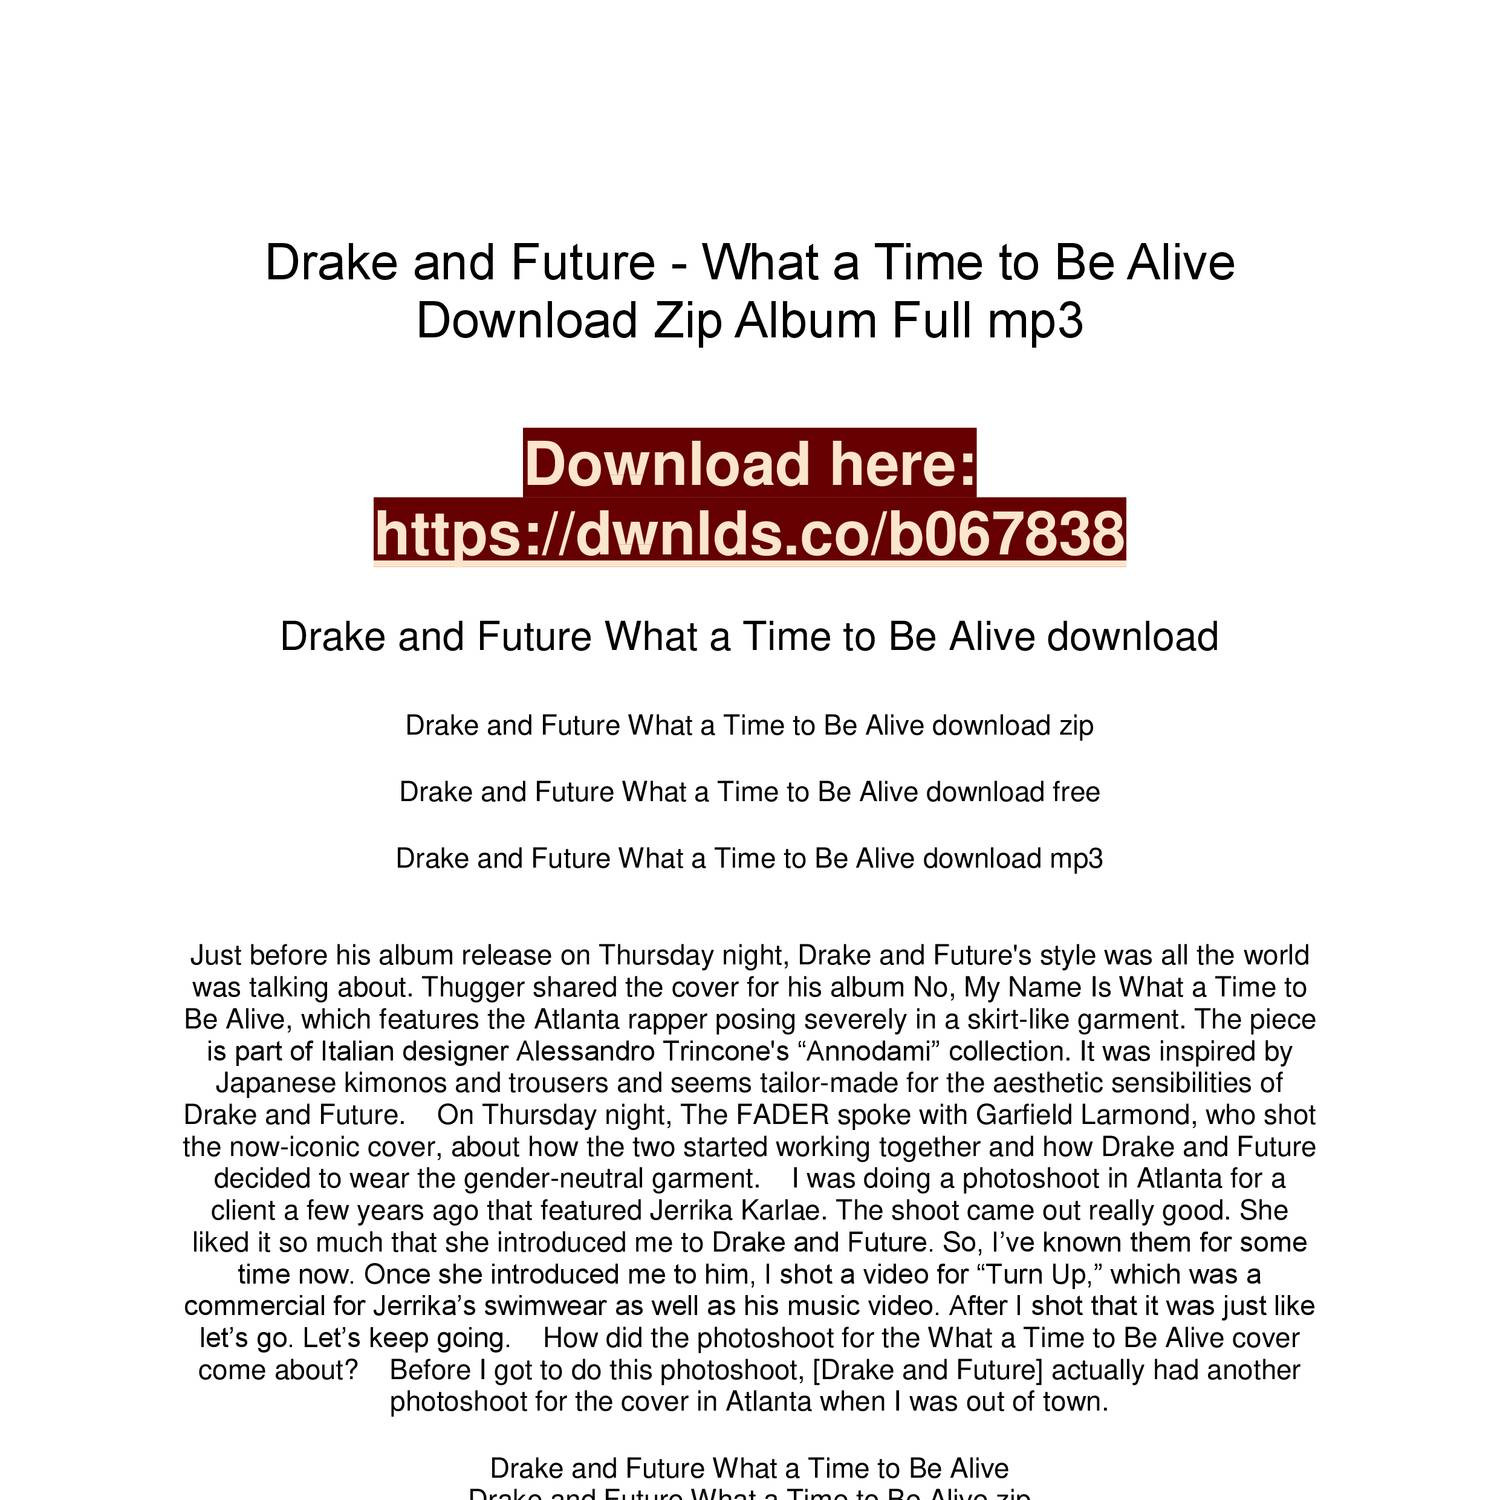 what a time to be alive download album